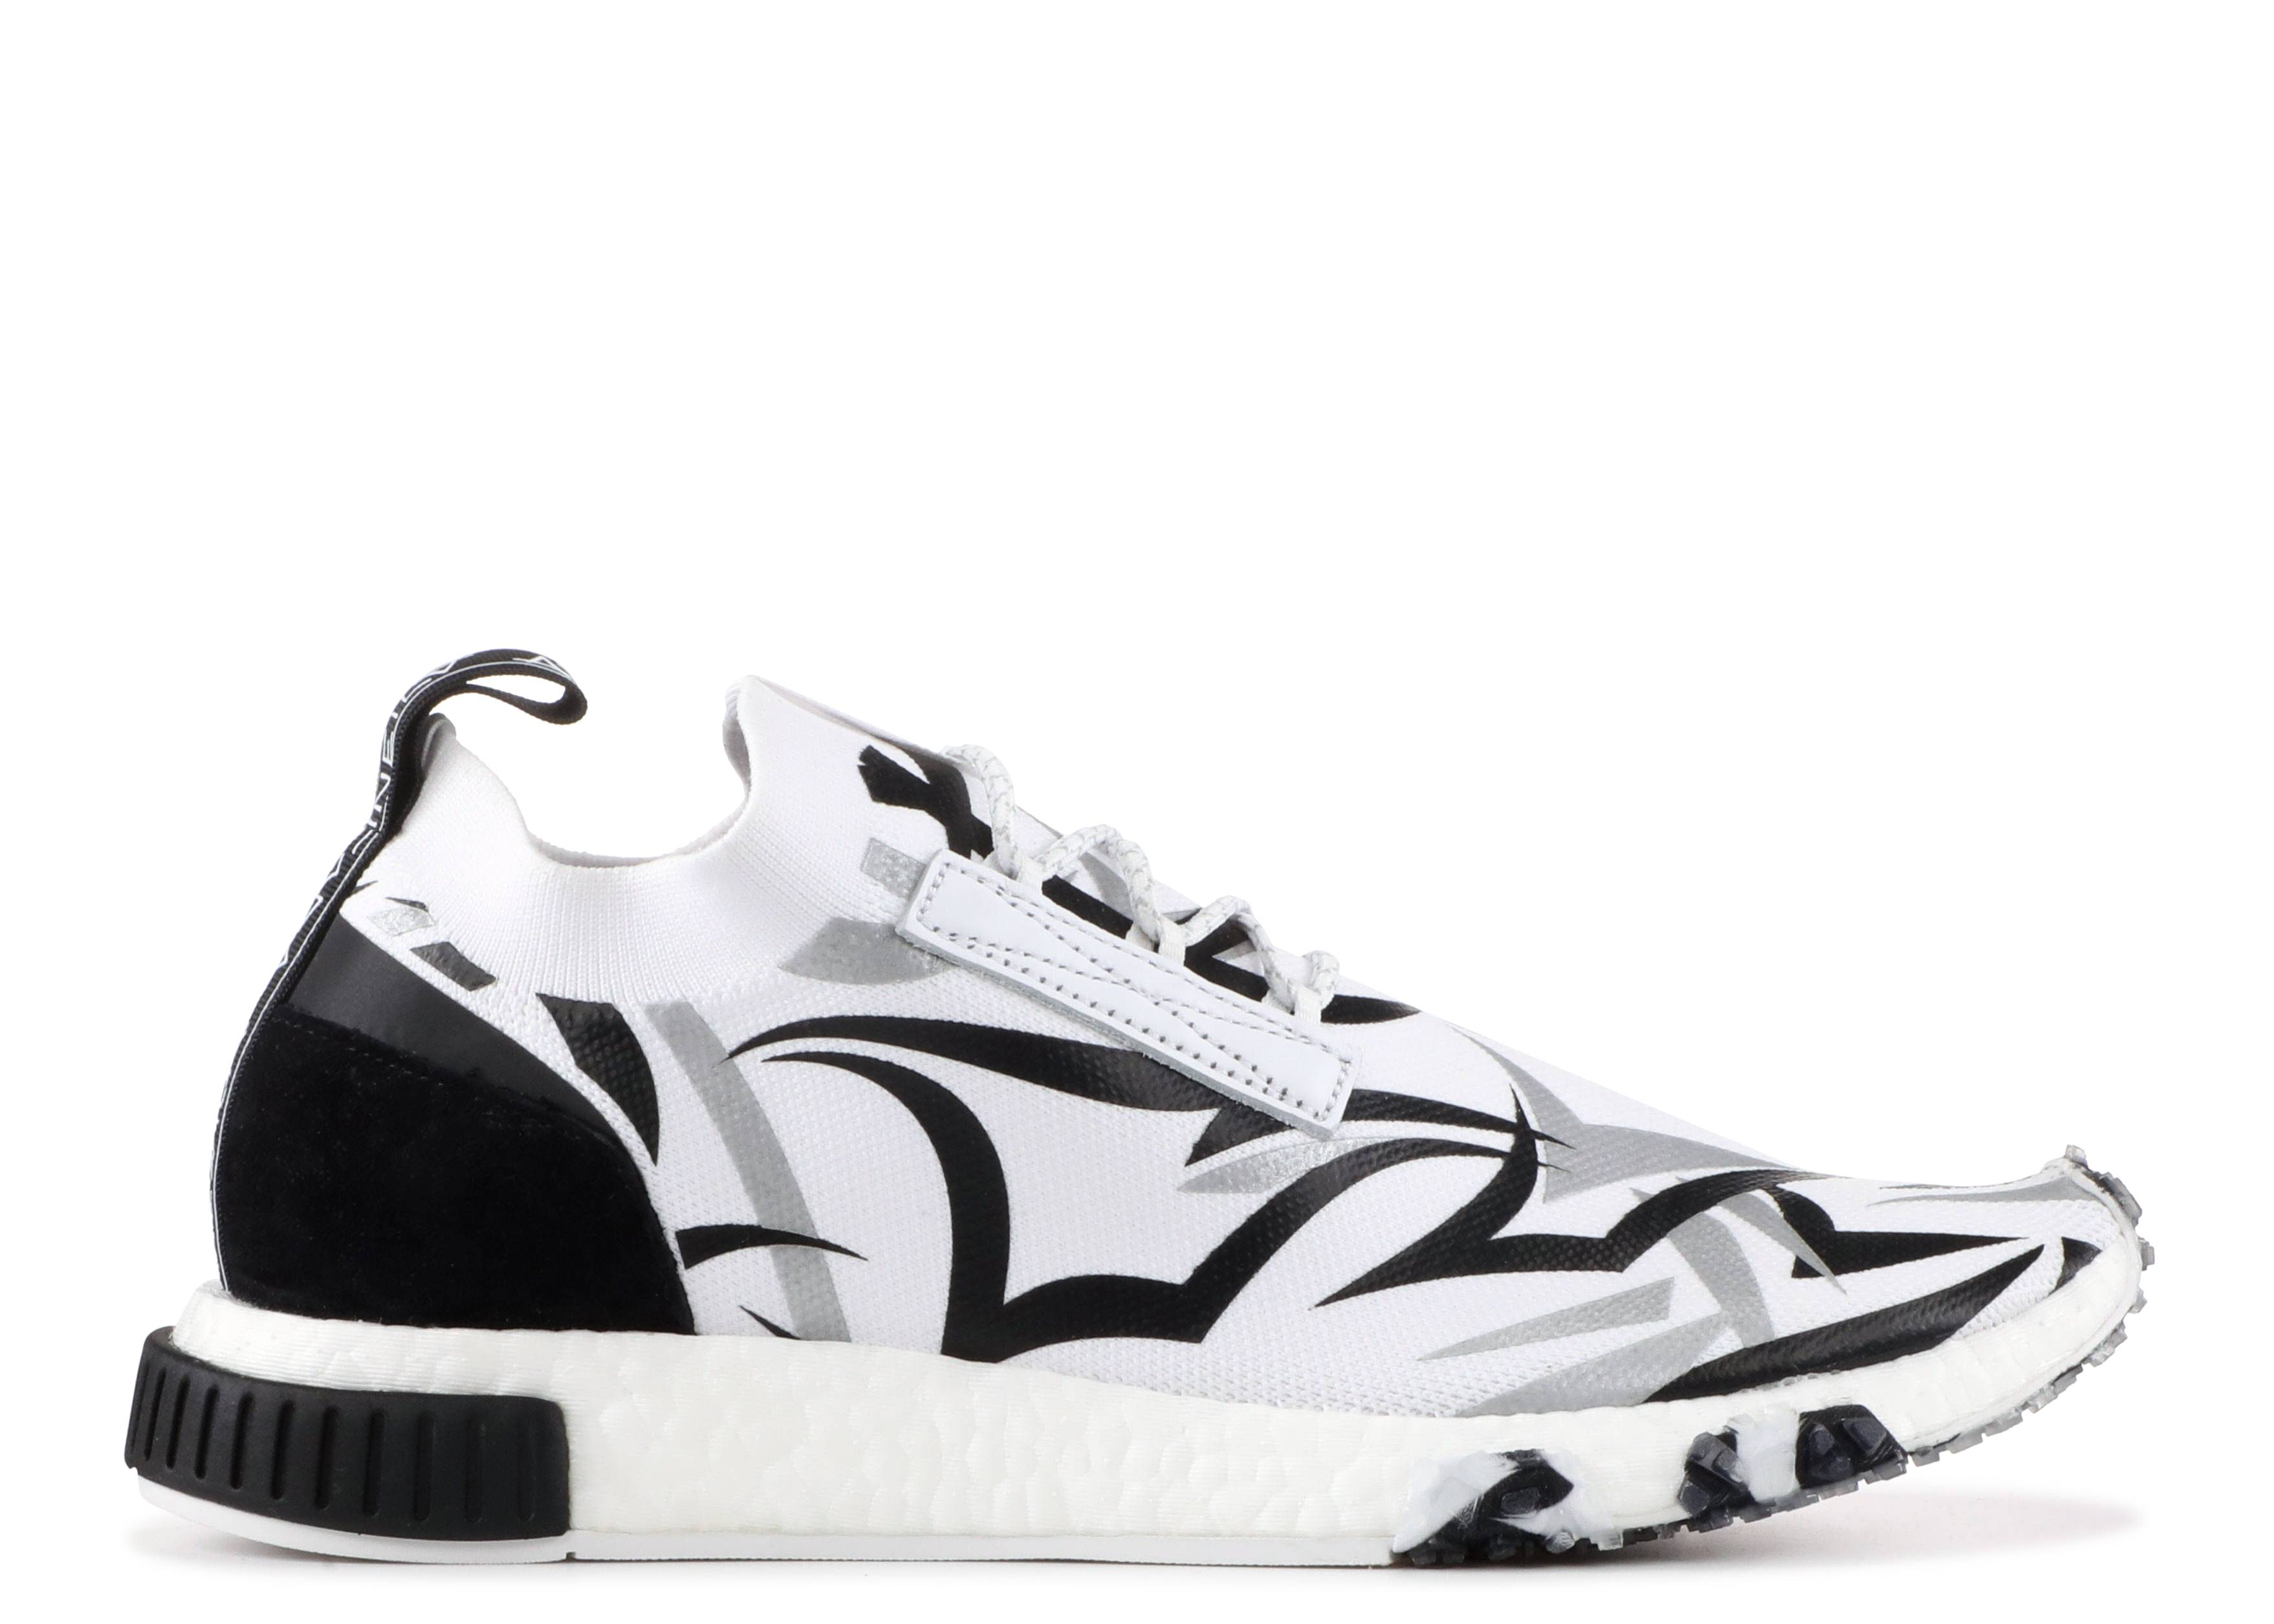 separation shoes f06b1 60116 NMD Racer Juice